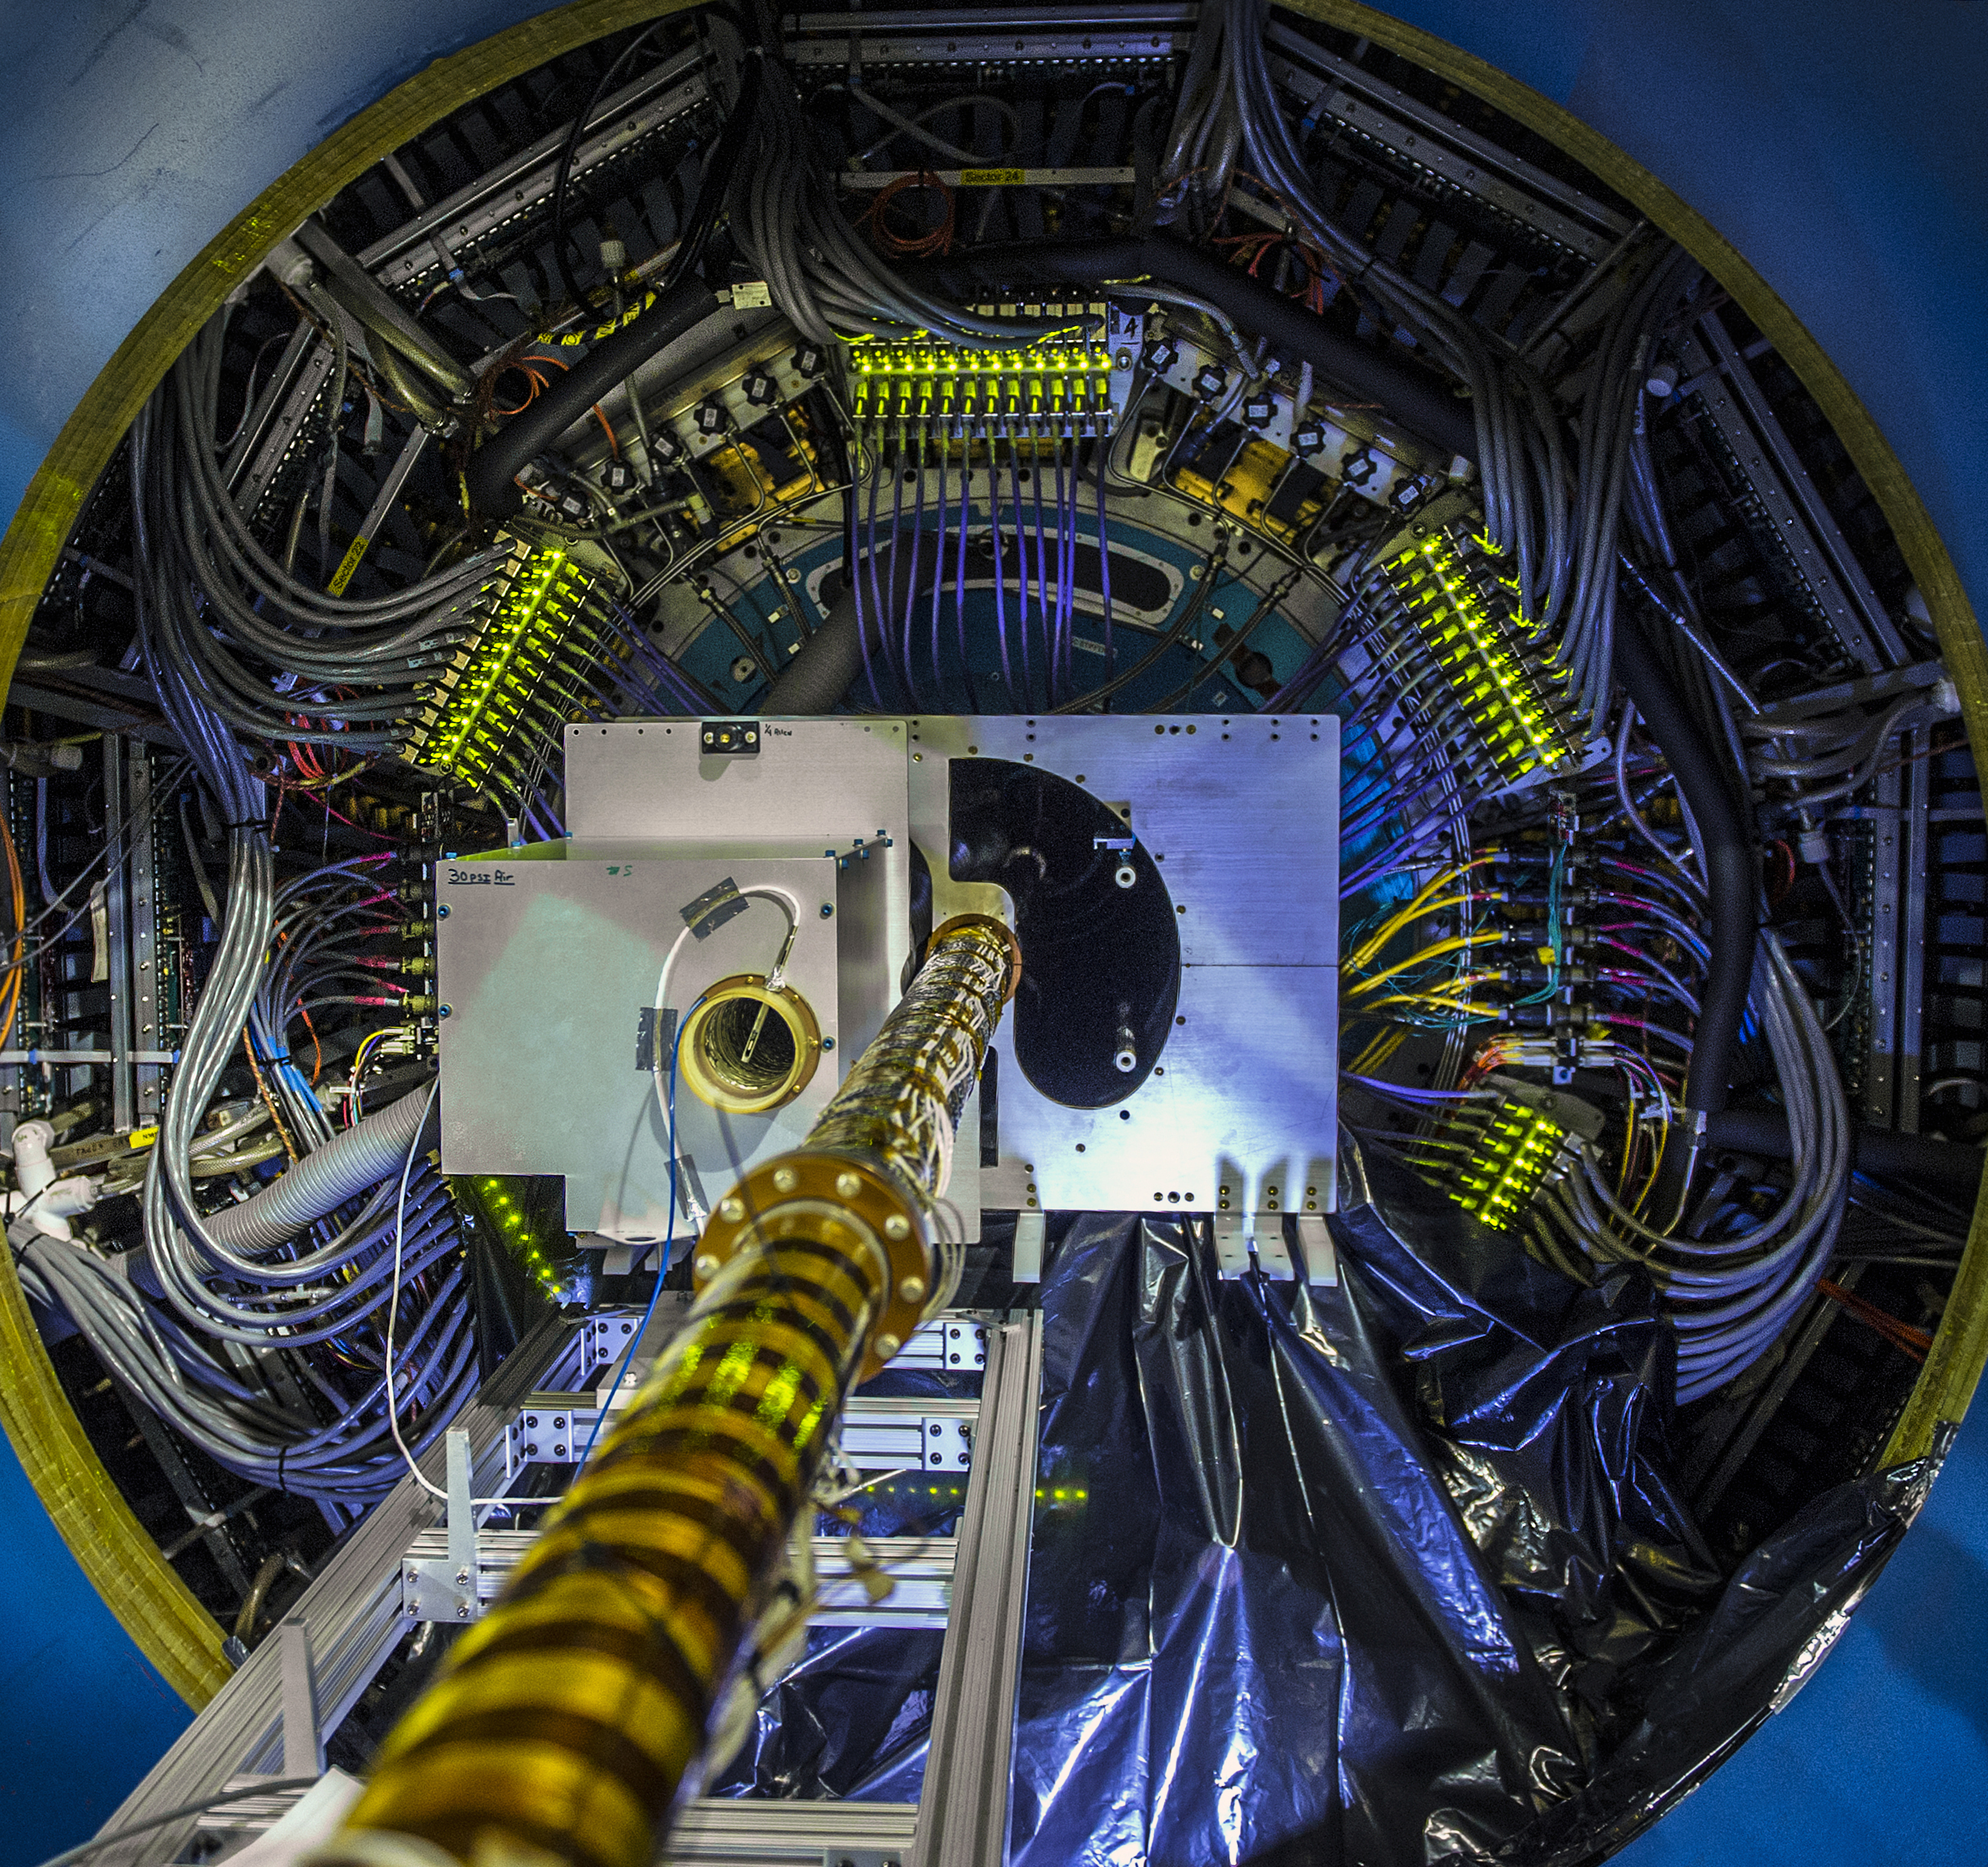 The central portion of the Heavy Flavor Tracker (HFT) being installed at the Relativistic Heavy Ion Collider's STAR detector. The HFT tracks particles made of